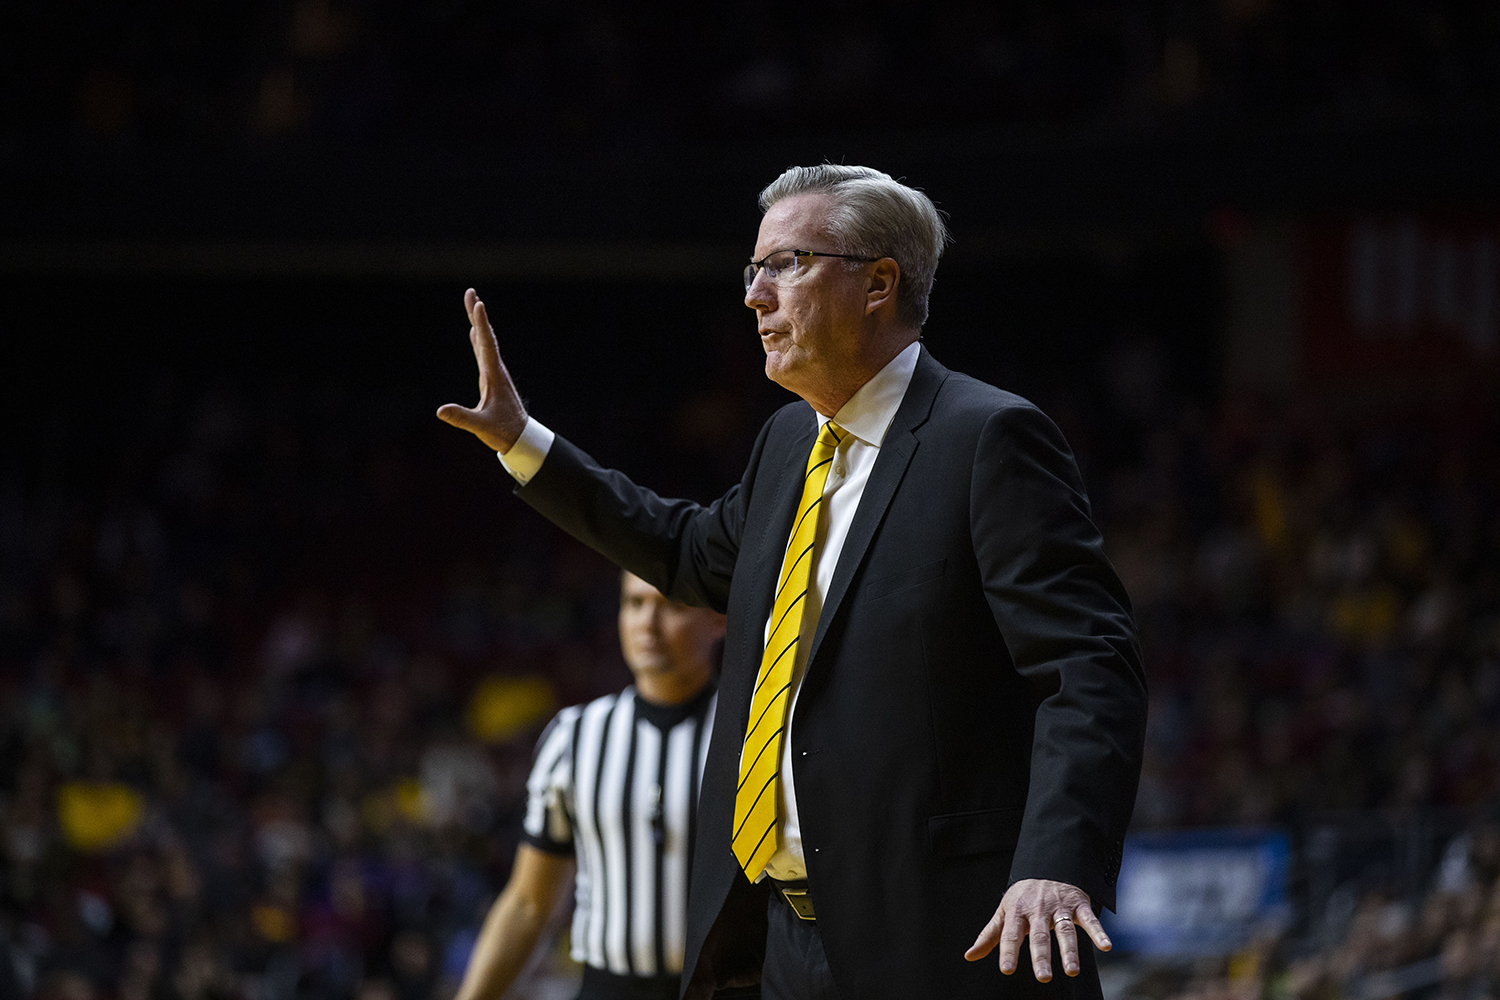 Iowa+head+coach+Fran+McCaffery+gestures+during+the+Iowa%2FUNI+men%27s+basketball+game+at+Wells+Fargo+Arena+in+Des+Moines+on+Saturday%2C+Dec.+15%2C+2018.+The+Hawkeyes+defeated+the+Panthers%2C+77-54.+